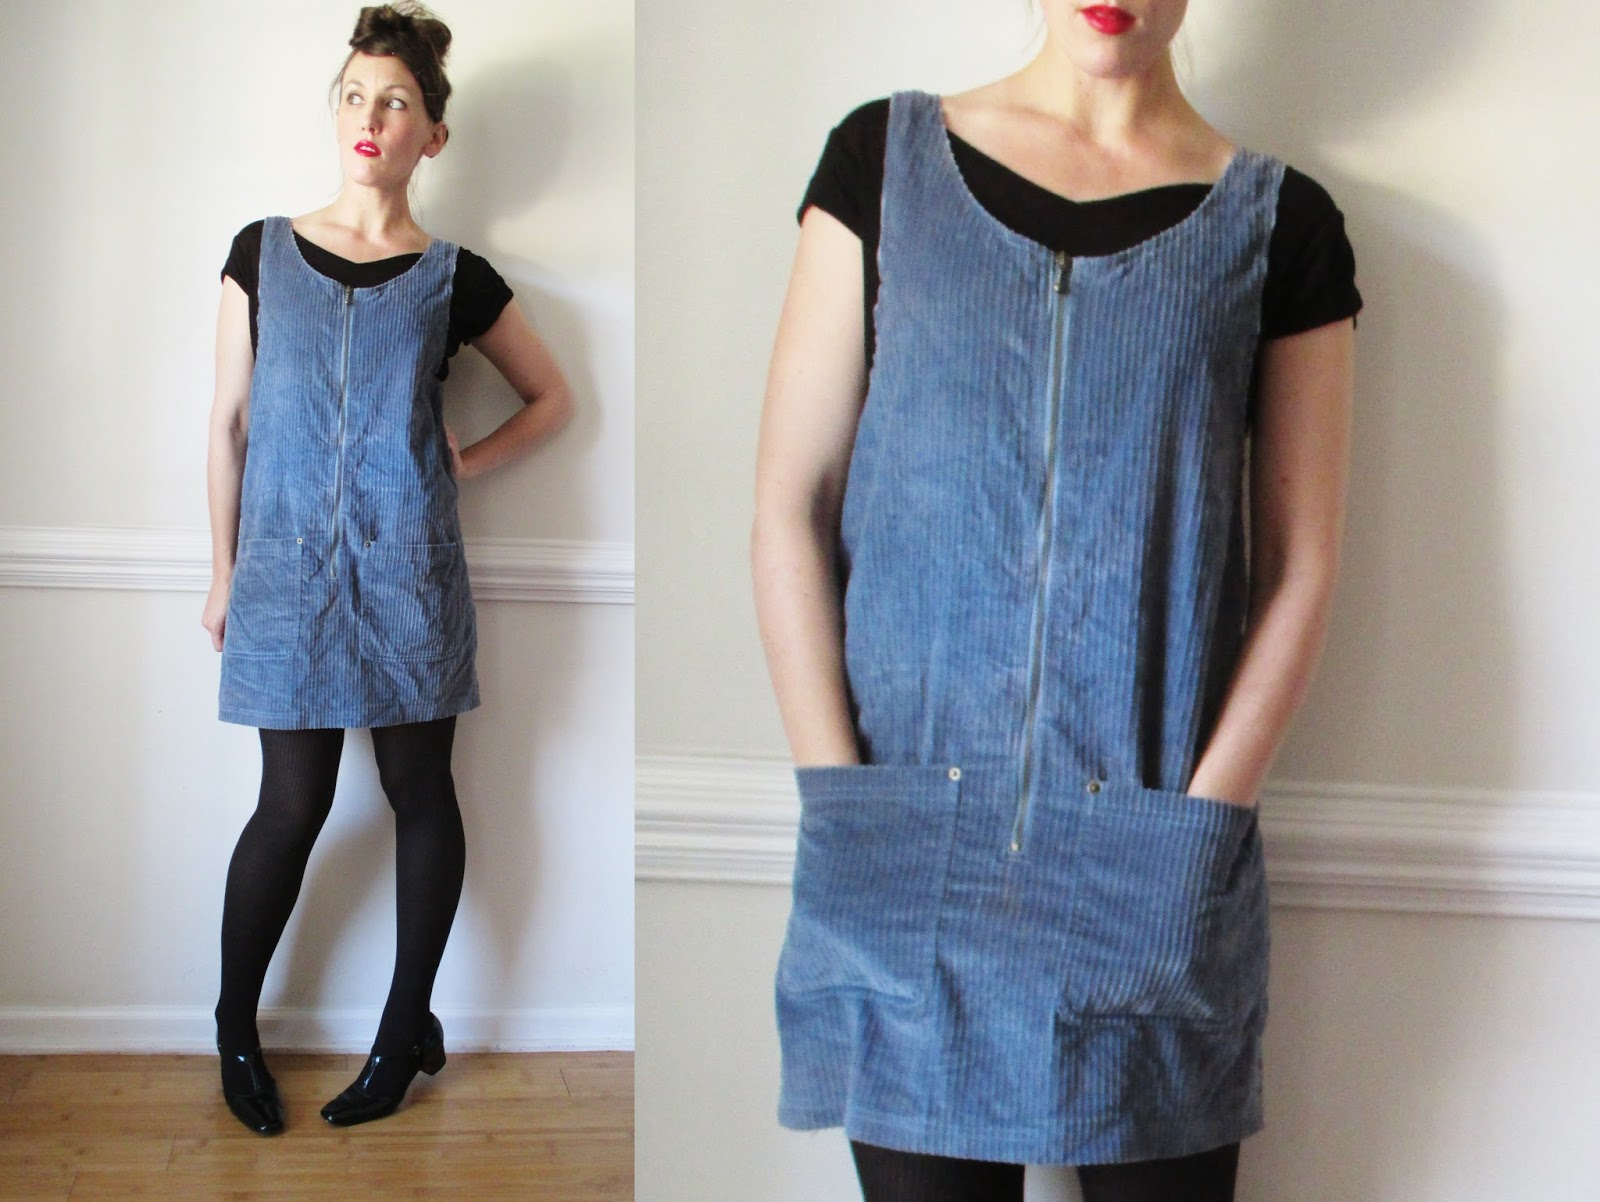 https://www.etsy.com/listing/208871729/90s-mini-dress-corduroy-overalls-tank?ref=shop_home_active_10